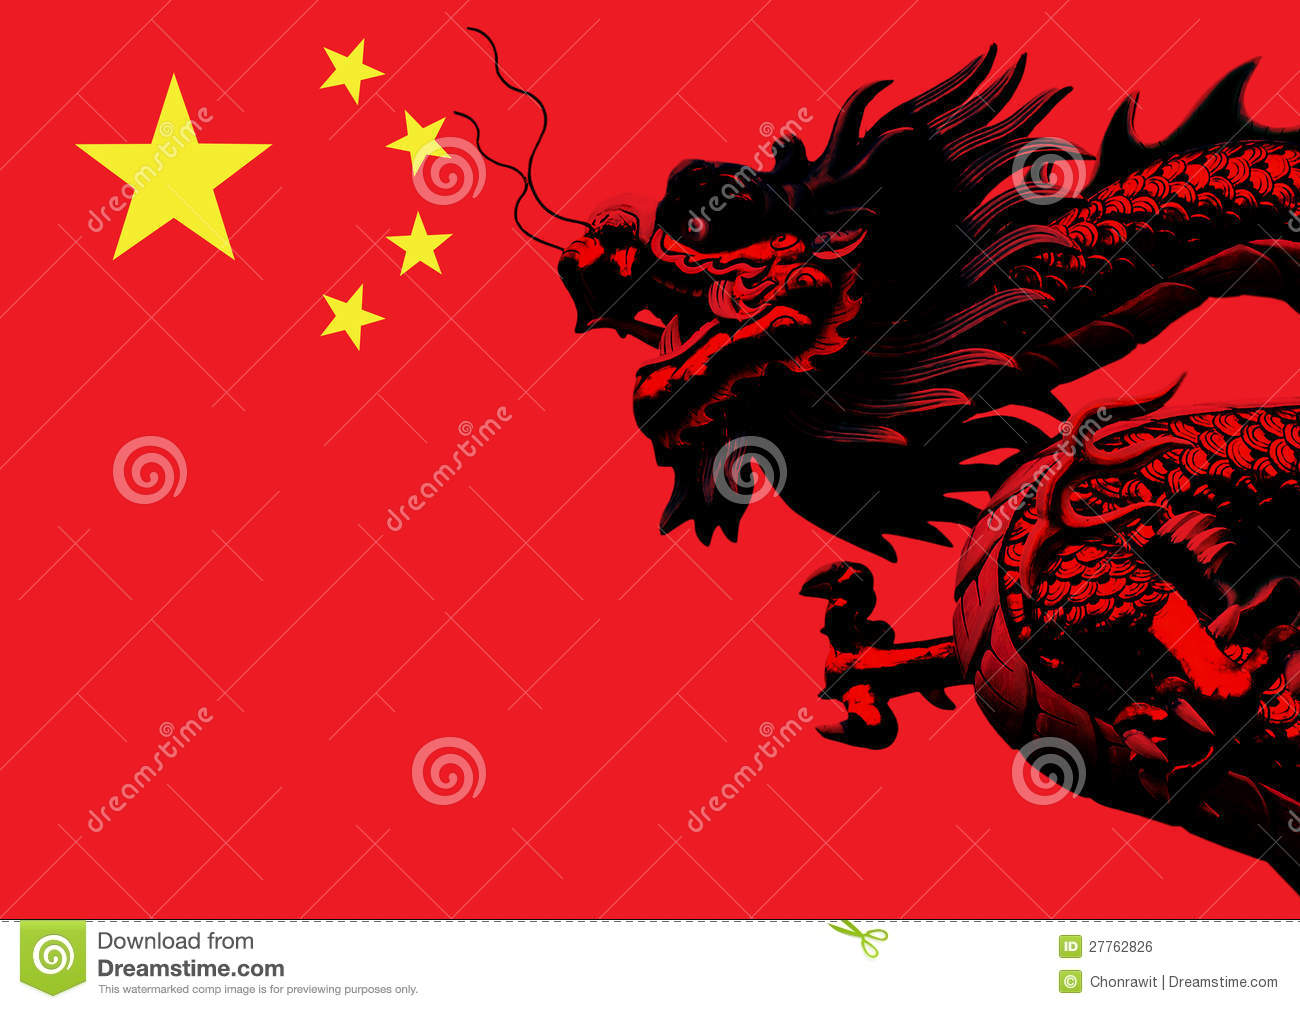 chinese dragon flag stock illustration. image of detail - 27762826, Powerpoint templates